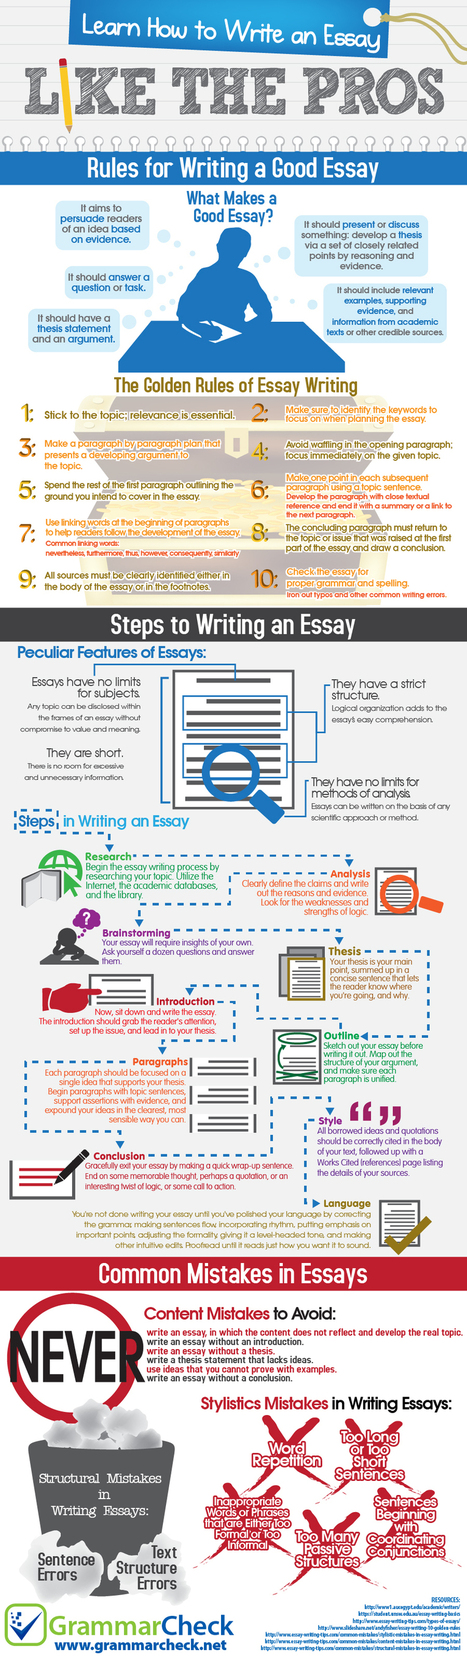 common ielts speaking and writing task topics  how to write an essay like the pros infographic